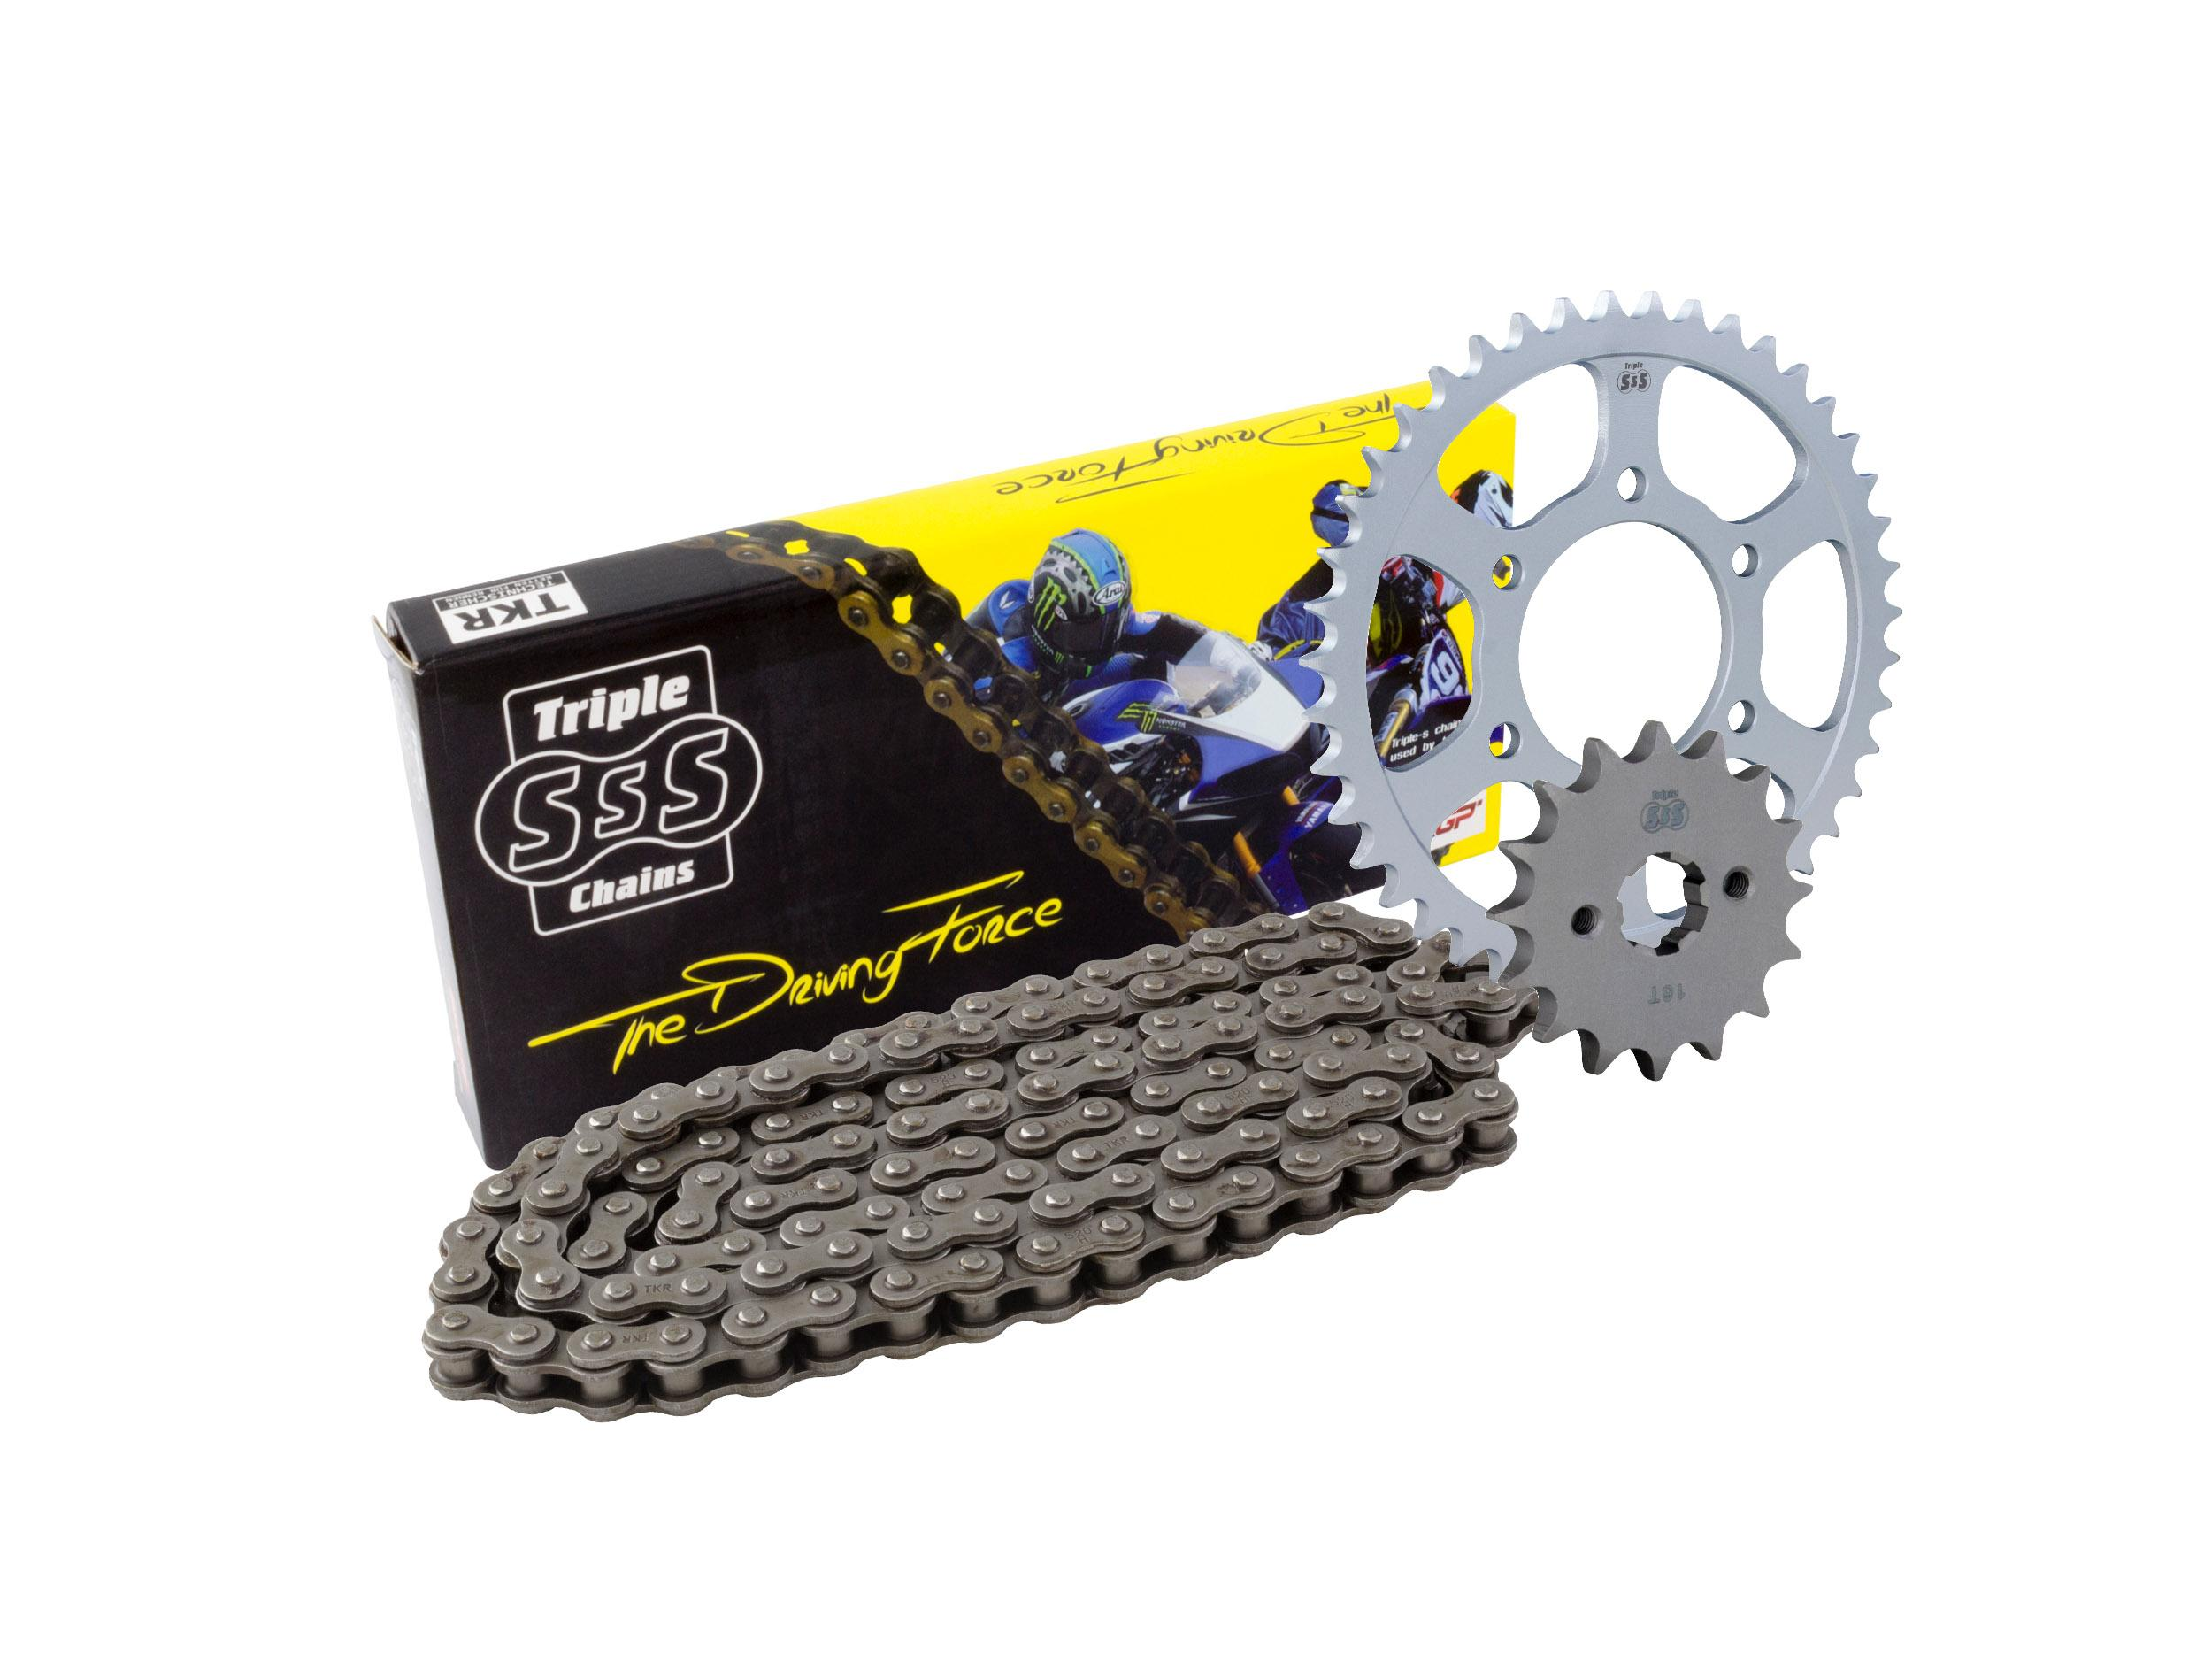 Suzuki DR-Z125 L K3-K9/ L0 03-10 Chain & Sprocket Kit: 14T Front, 57T Rear, HD Chain 428H 134 Link